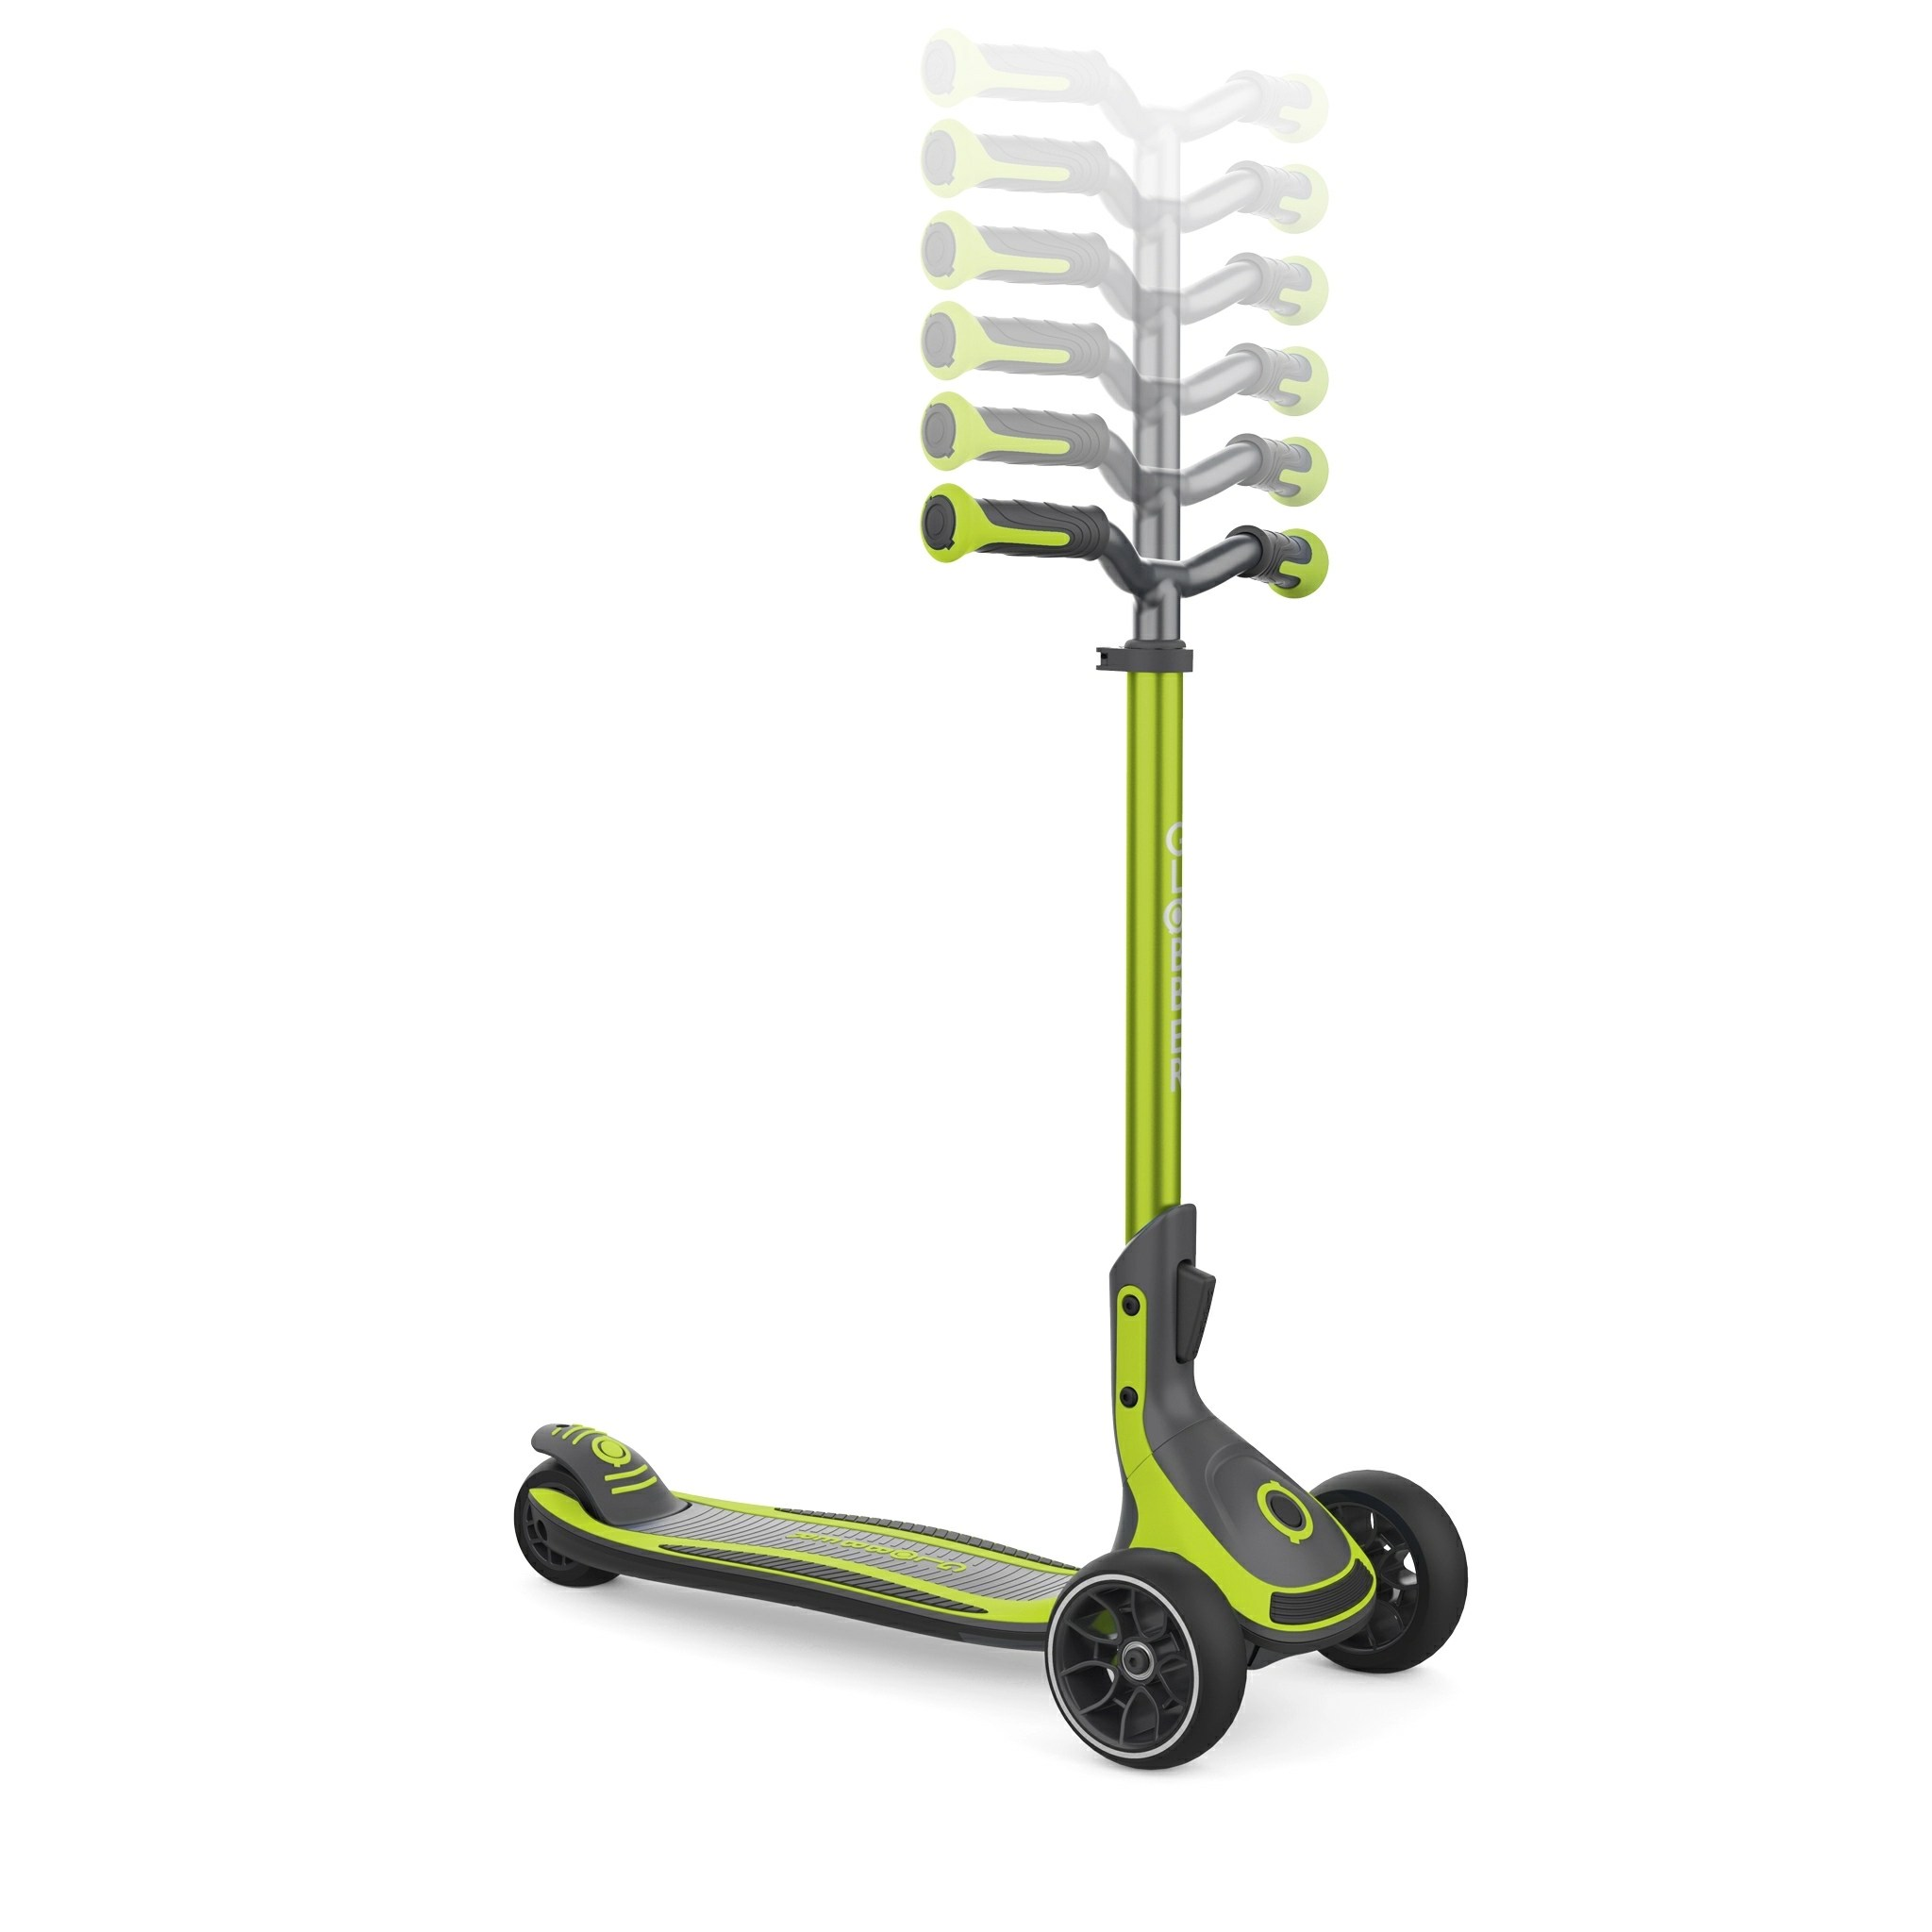 Ultimum 3 Wheel Scooter For Kids Teens Adults Patented